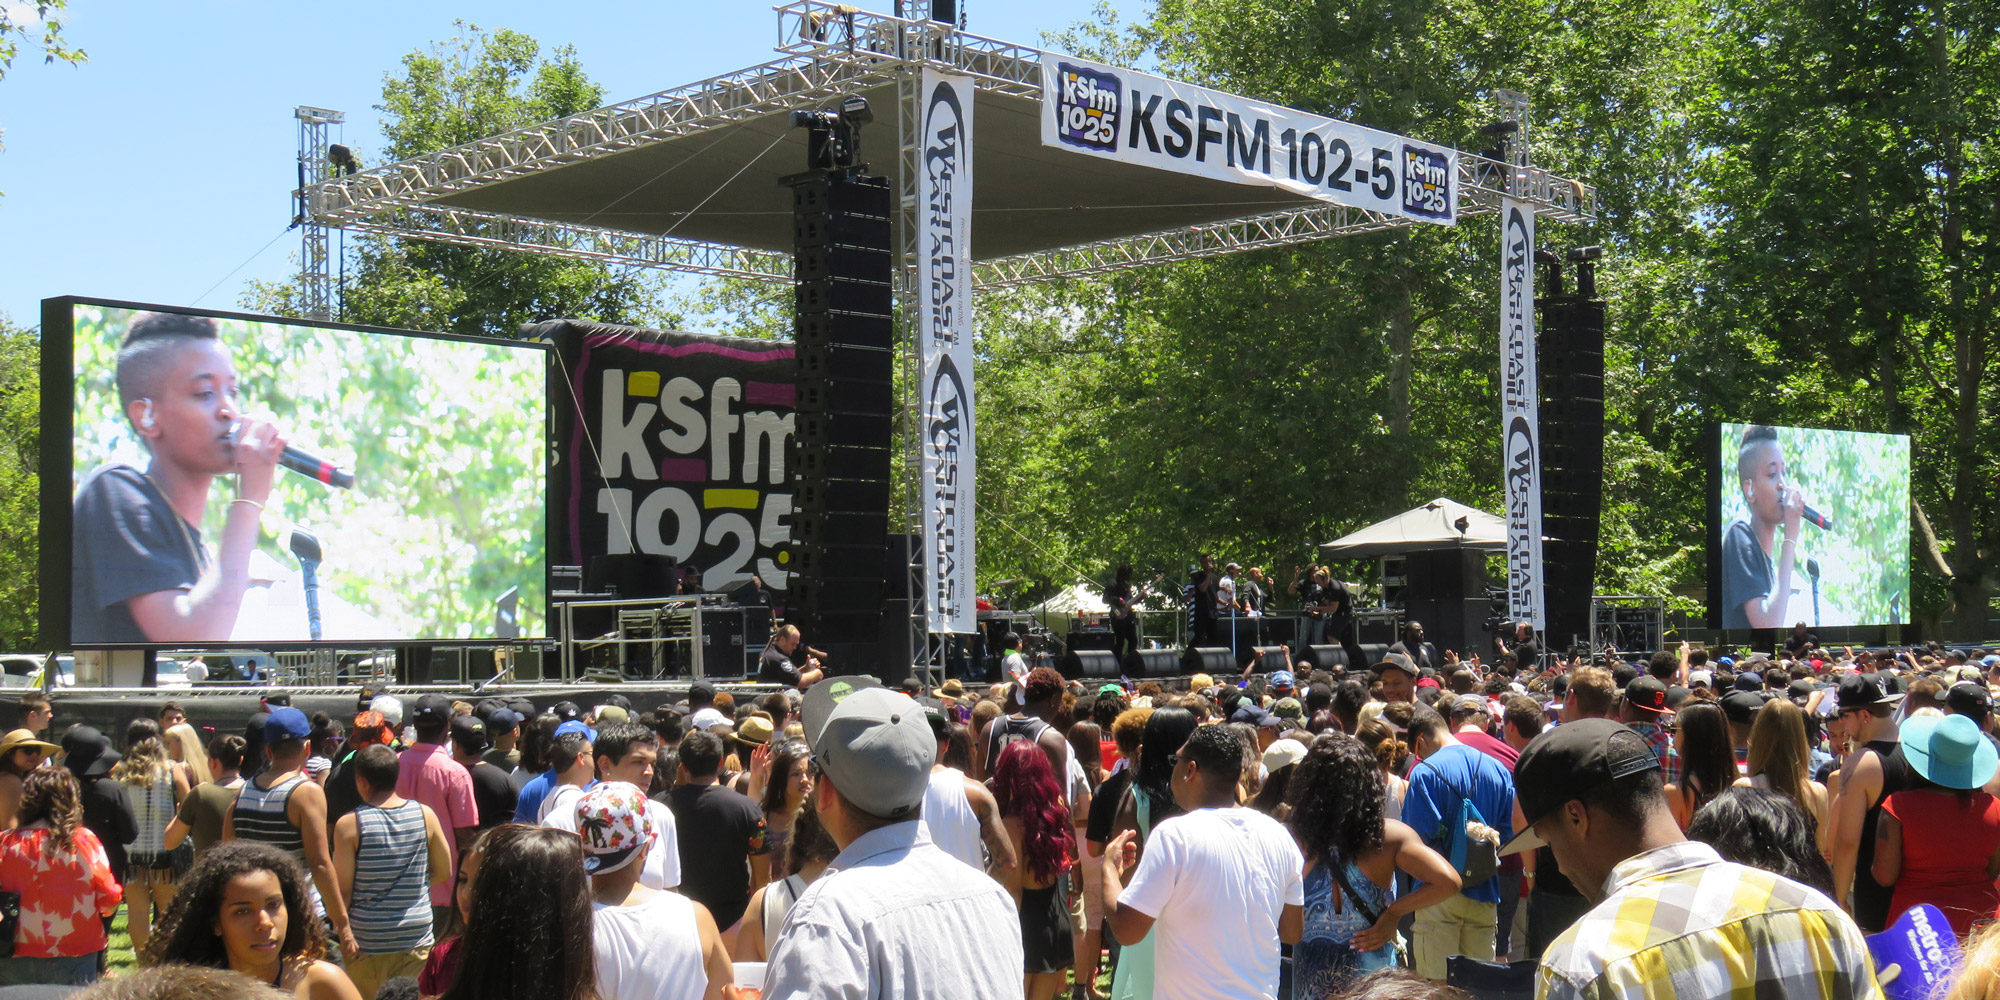 JumboVision Mobile LED Screen at KSFM Concert